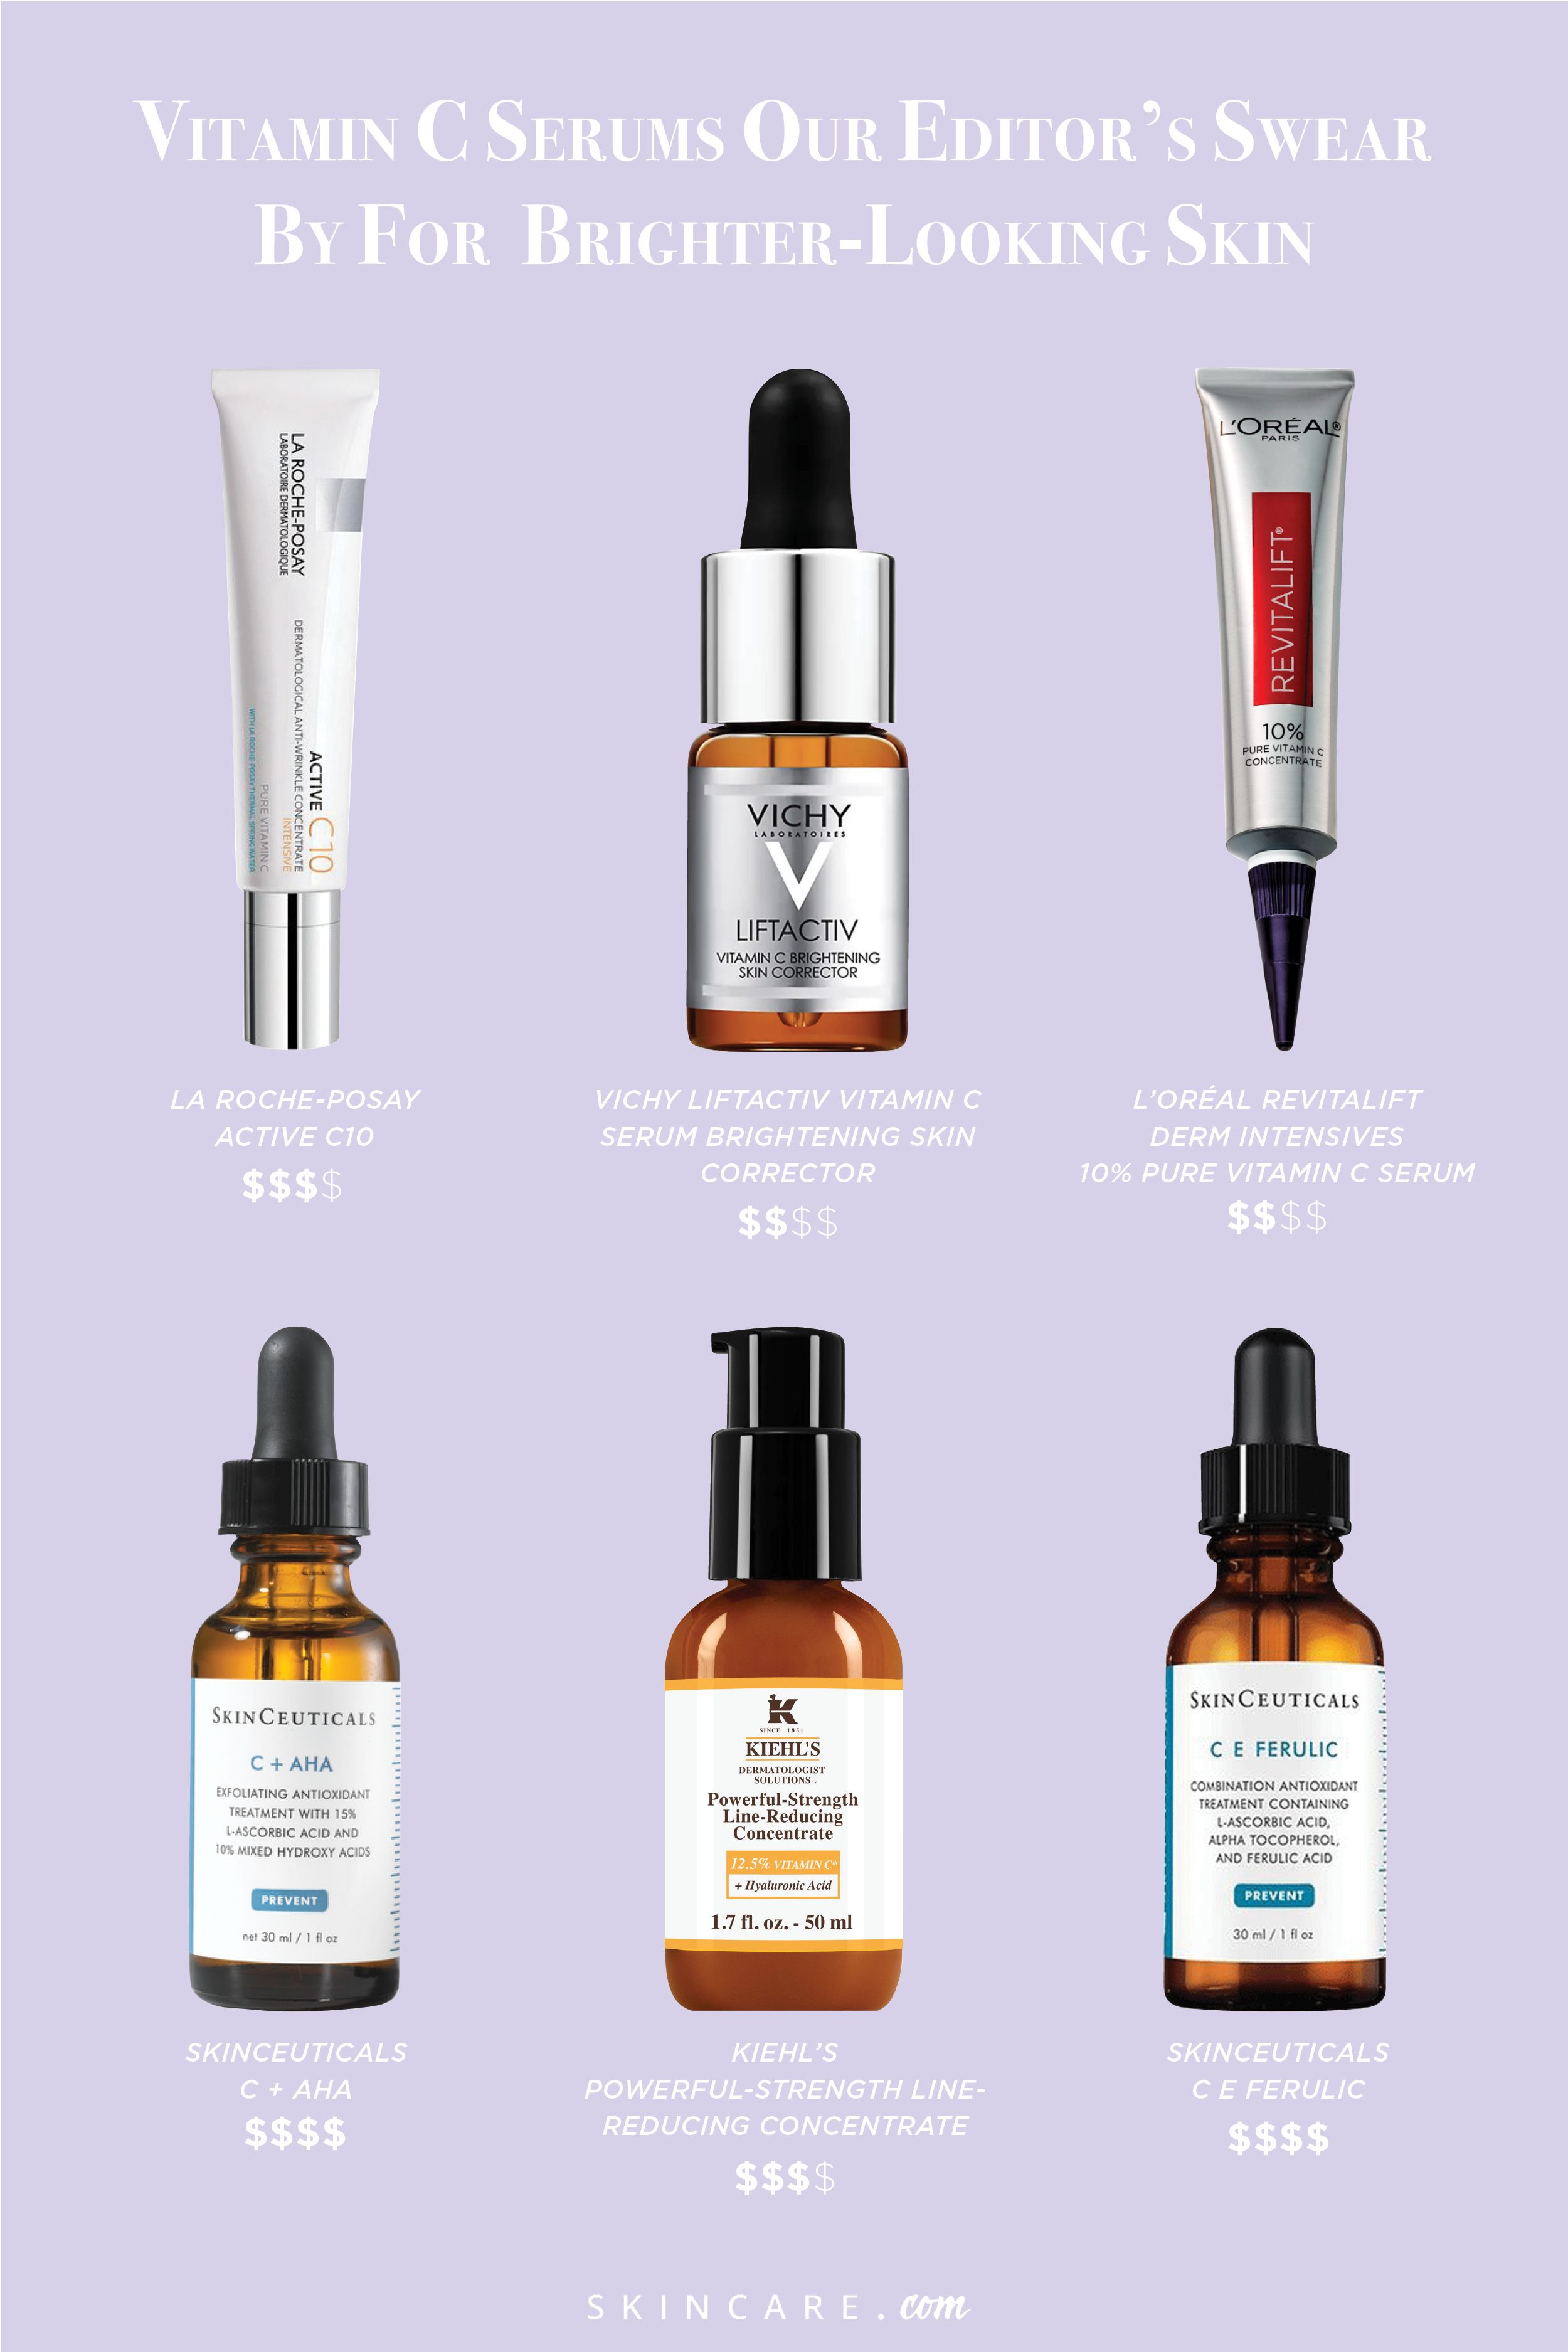 The Best Vitamin C Serums According To Our Editors Skincare Com By L Oreal Best Vitamin C Serum Skin Care Natural Skin Care